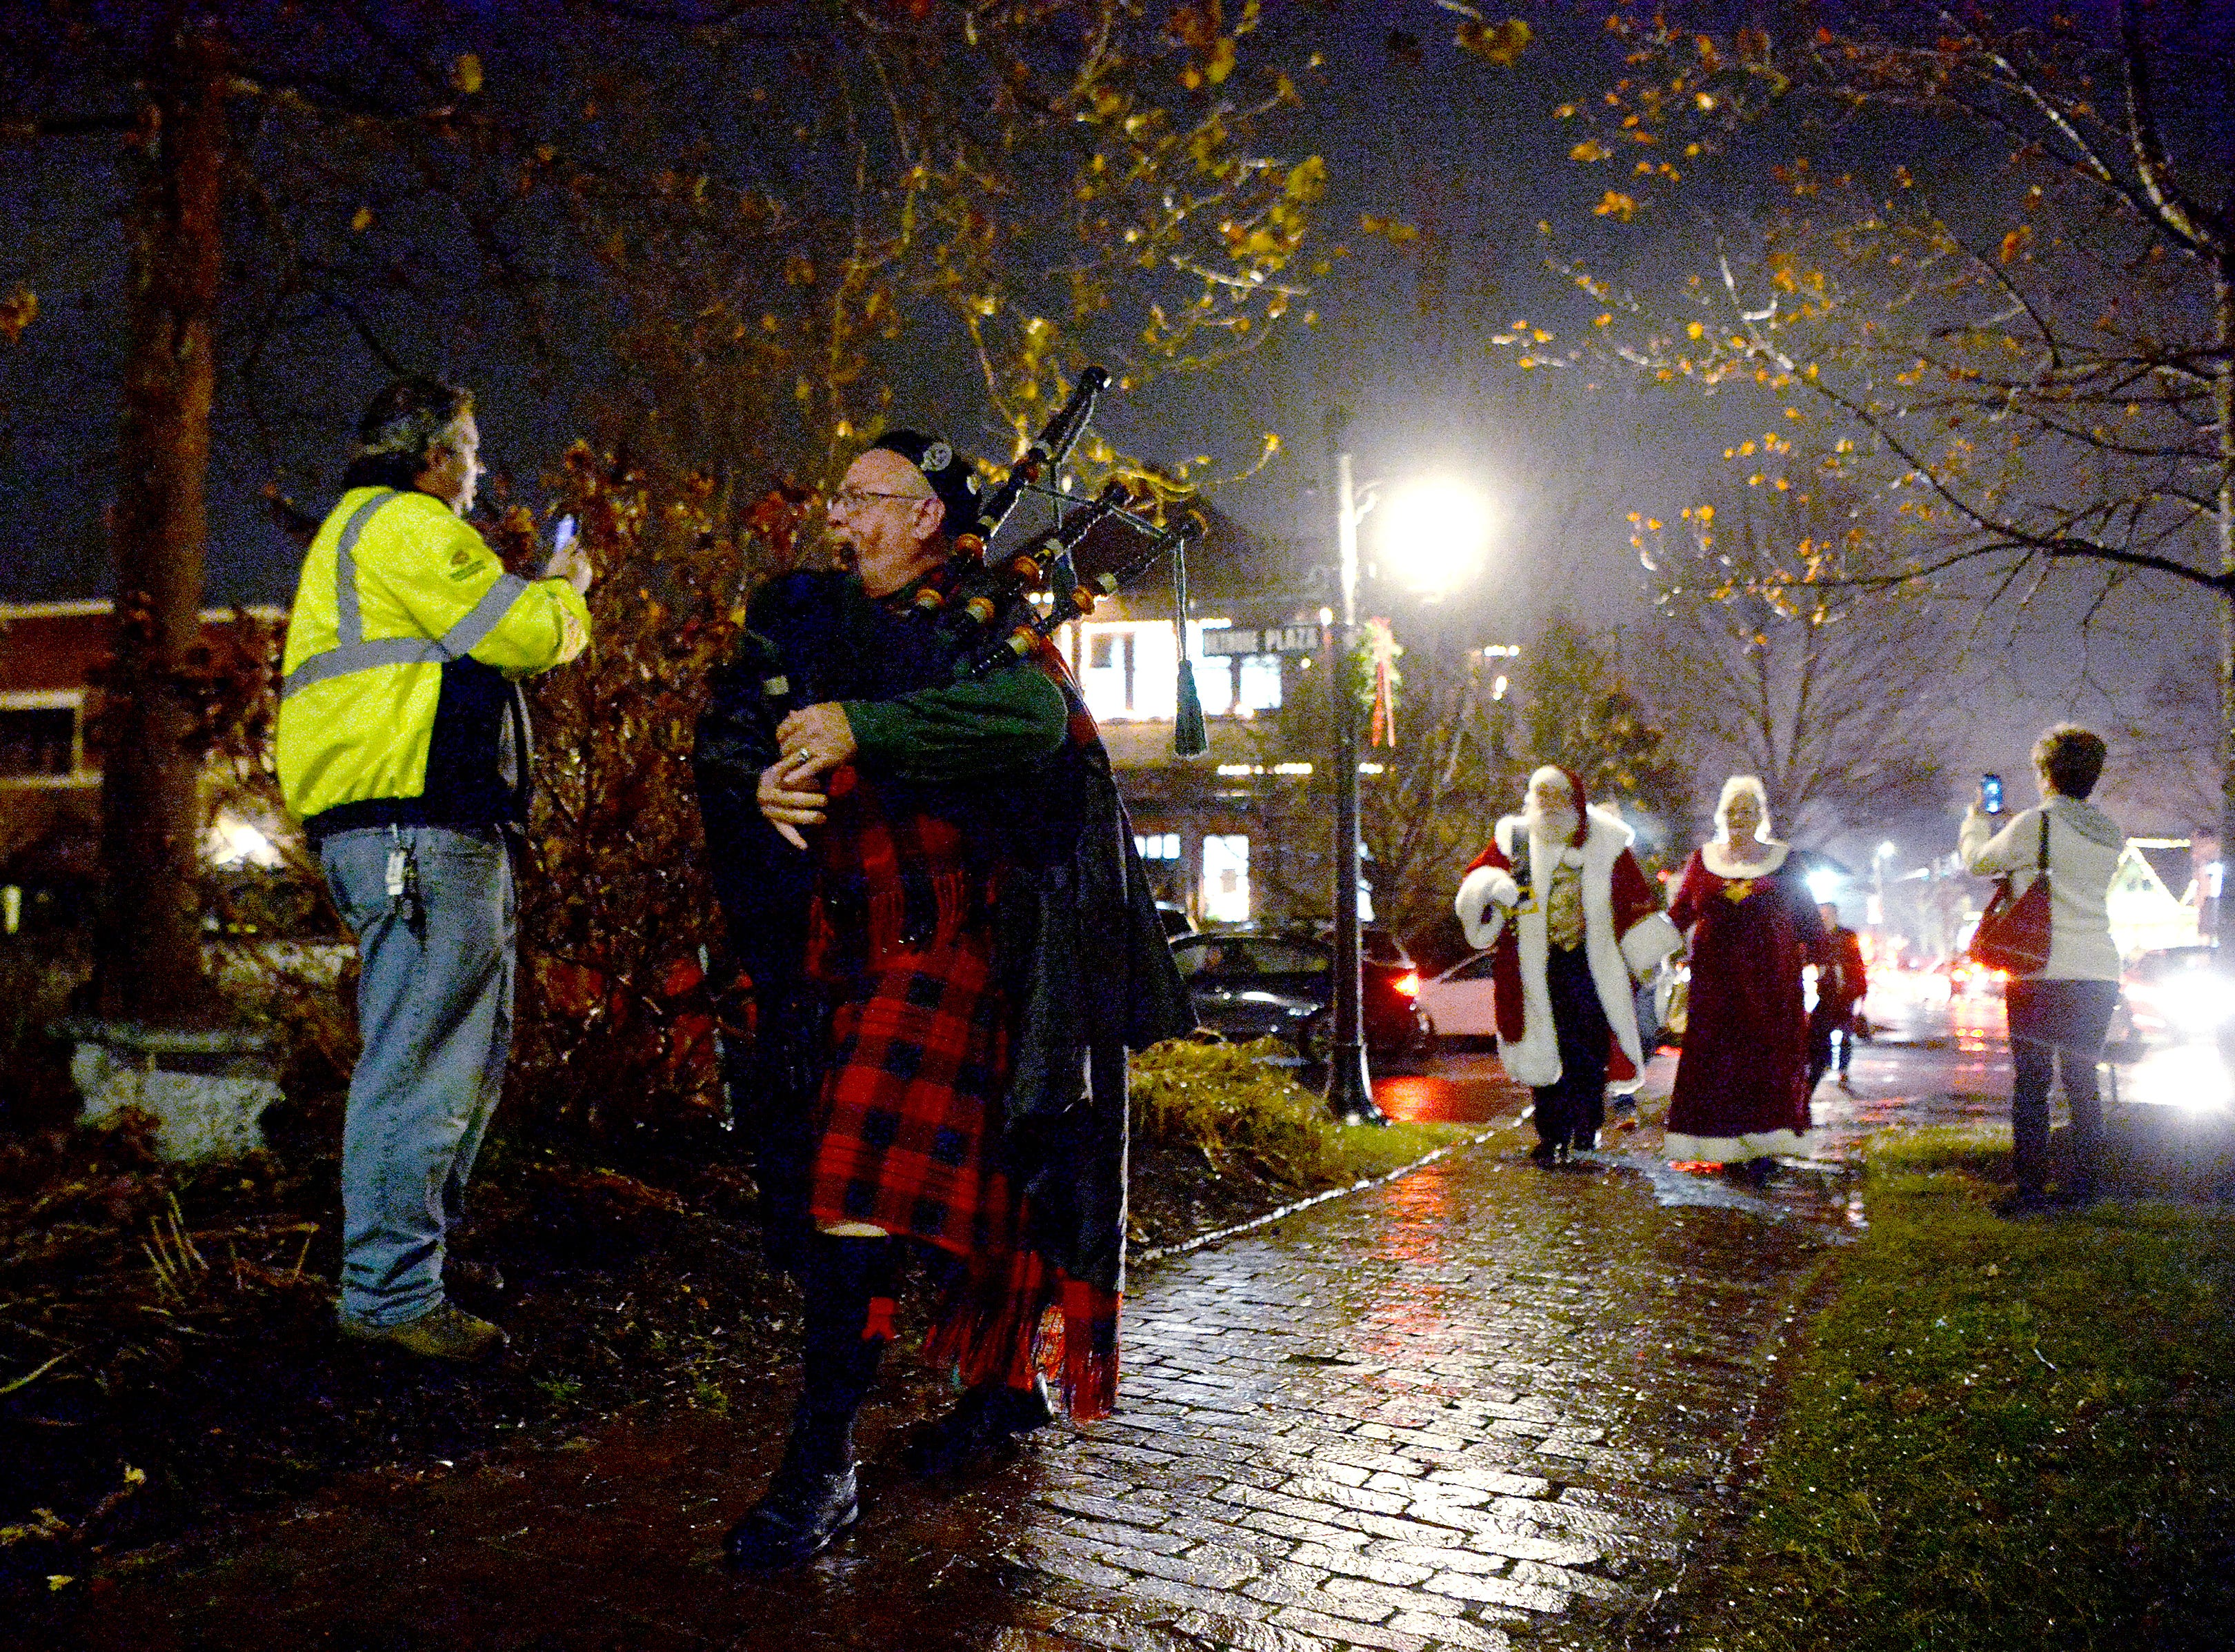 Caroling, performances, and a visit from Santa marked the 30th annual Biltmore Village Dickens Festival and tree lighting on Nov. 30, 2018.